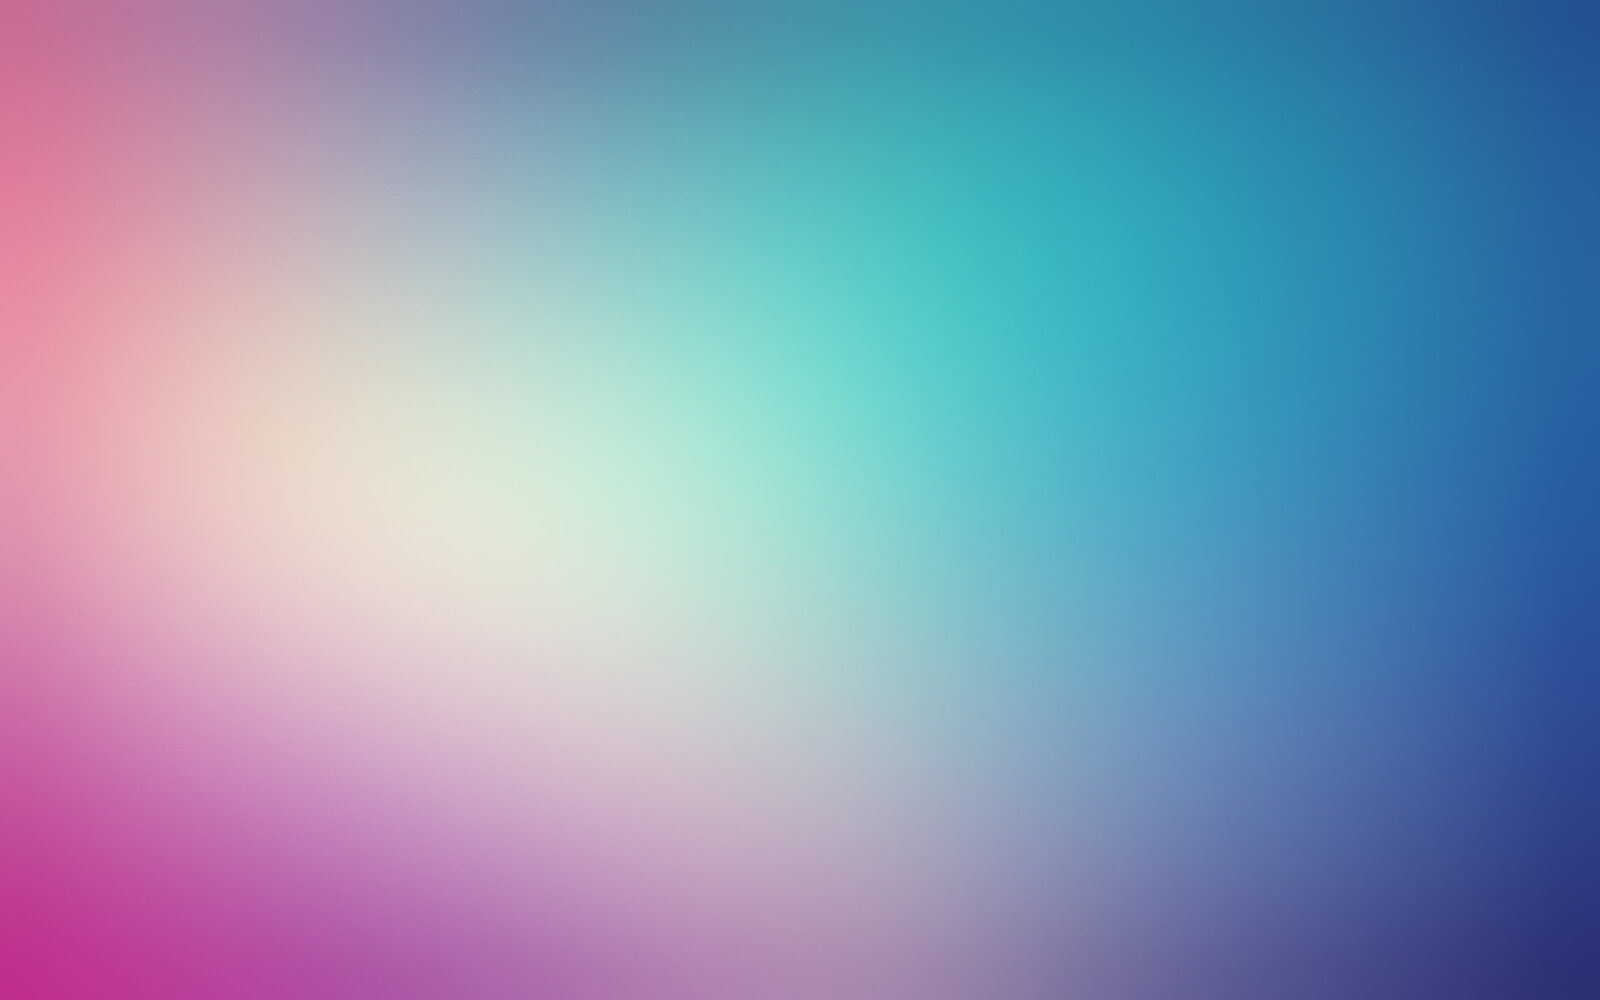 Featured image for Using Gradients in Web Design: Are They a New Trend?